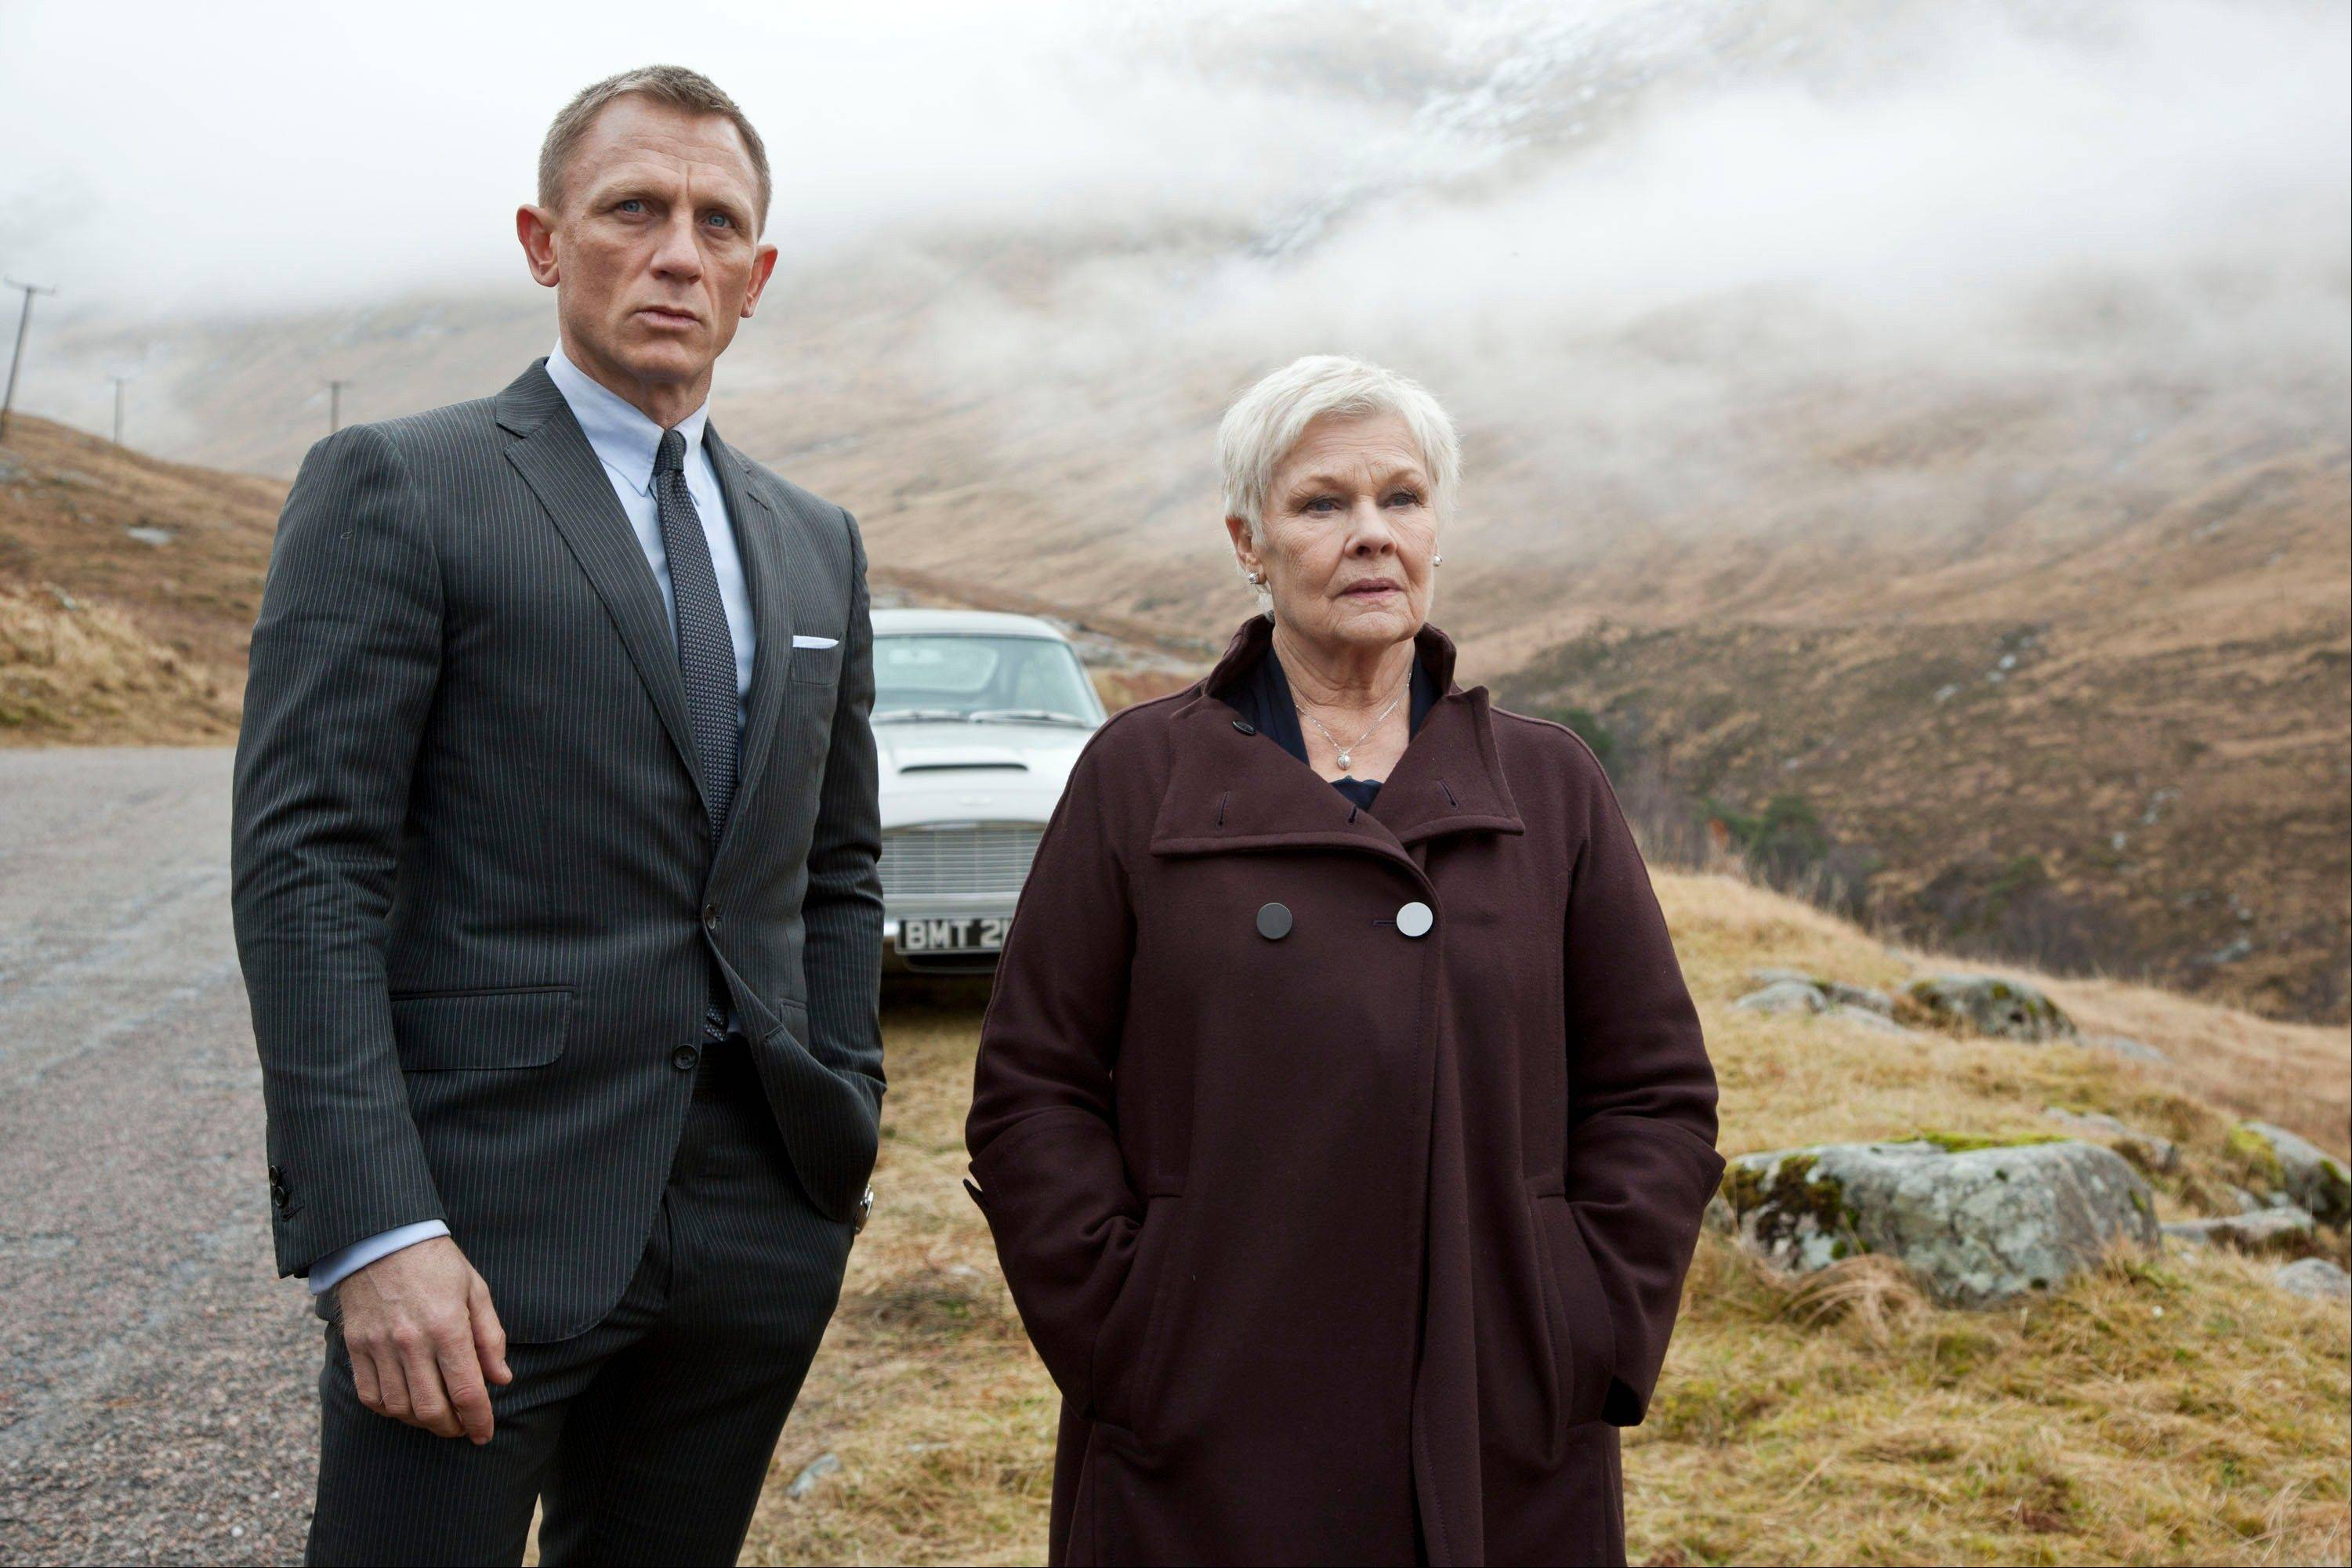 Judi Dench, starring in �Skyfall� with Daniel Craig, has been the Bond matriarch: the strong-willed, no-nonsense mainstay of feminine authority in a movie franchise that has, more often than not, featured slightly more superficial womanly traits.